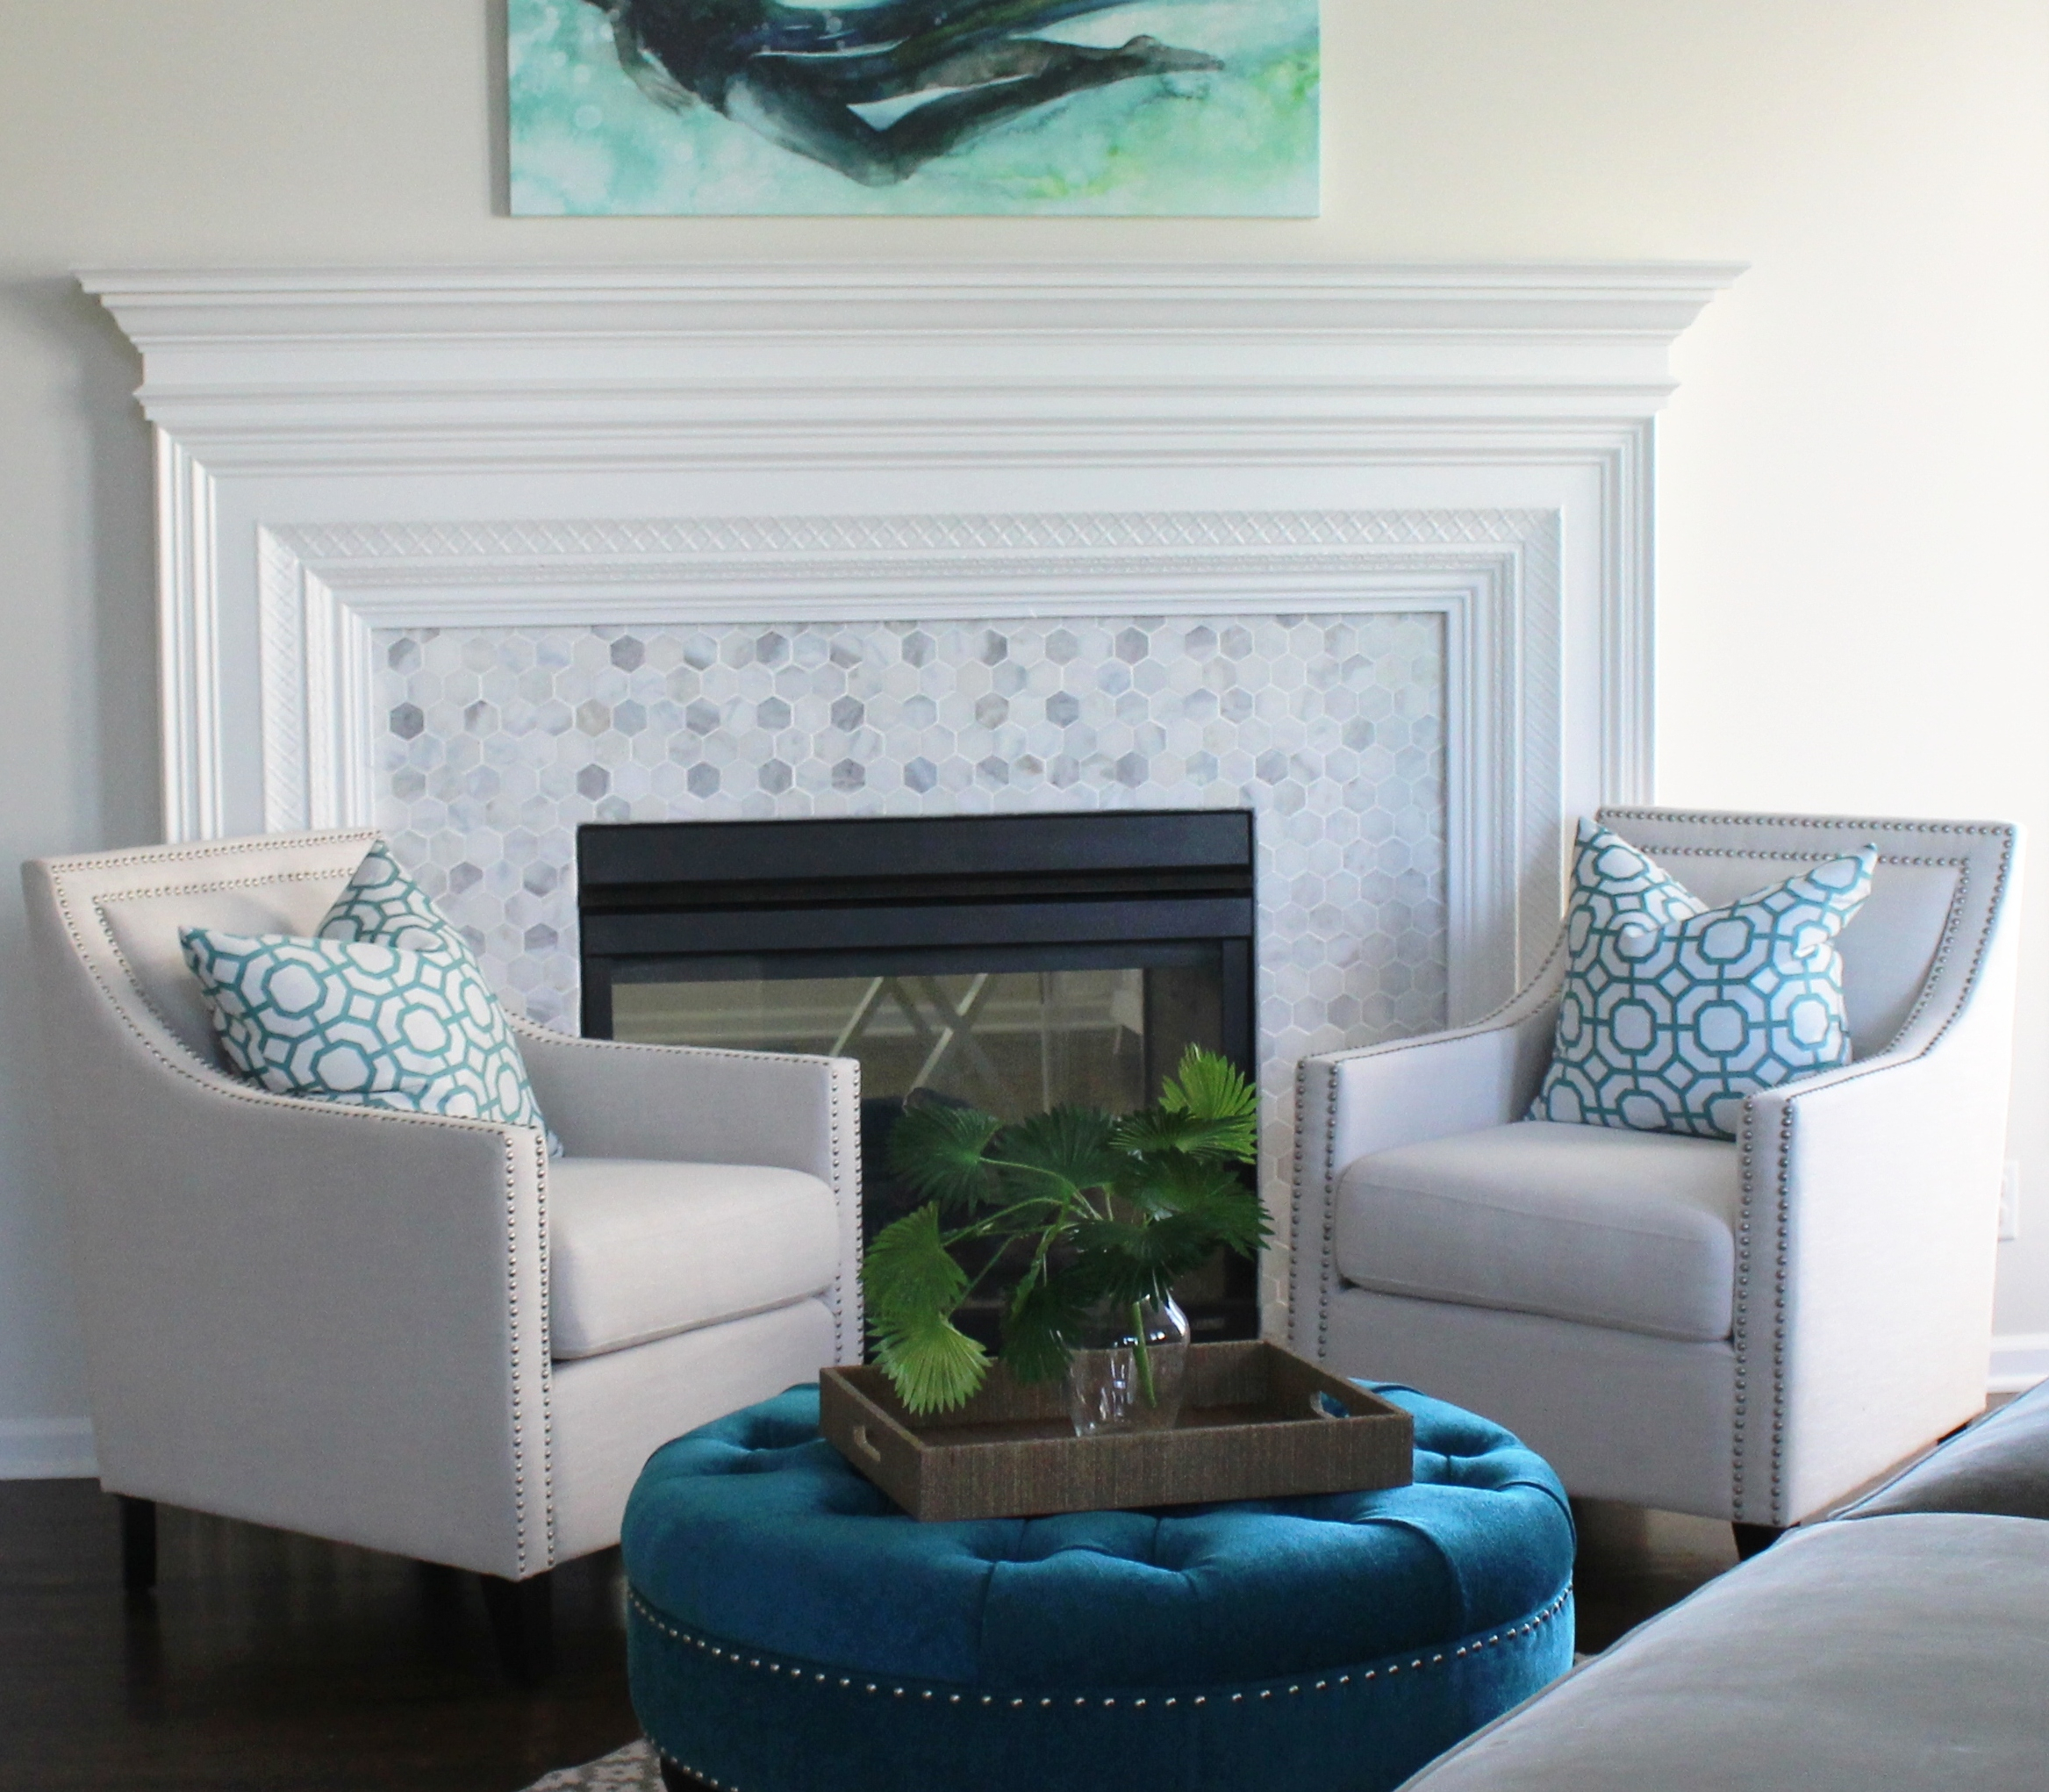 Interior Design: 3 Savvy Ways To Makeover Your Living Room Using Intended For Karen Sofa Chairs (Image 3 of 20)